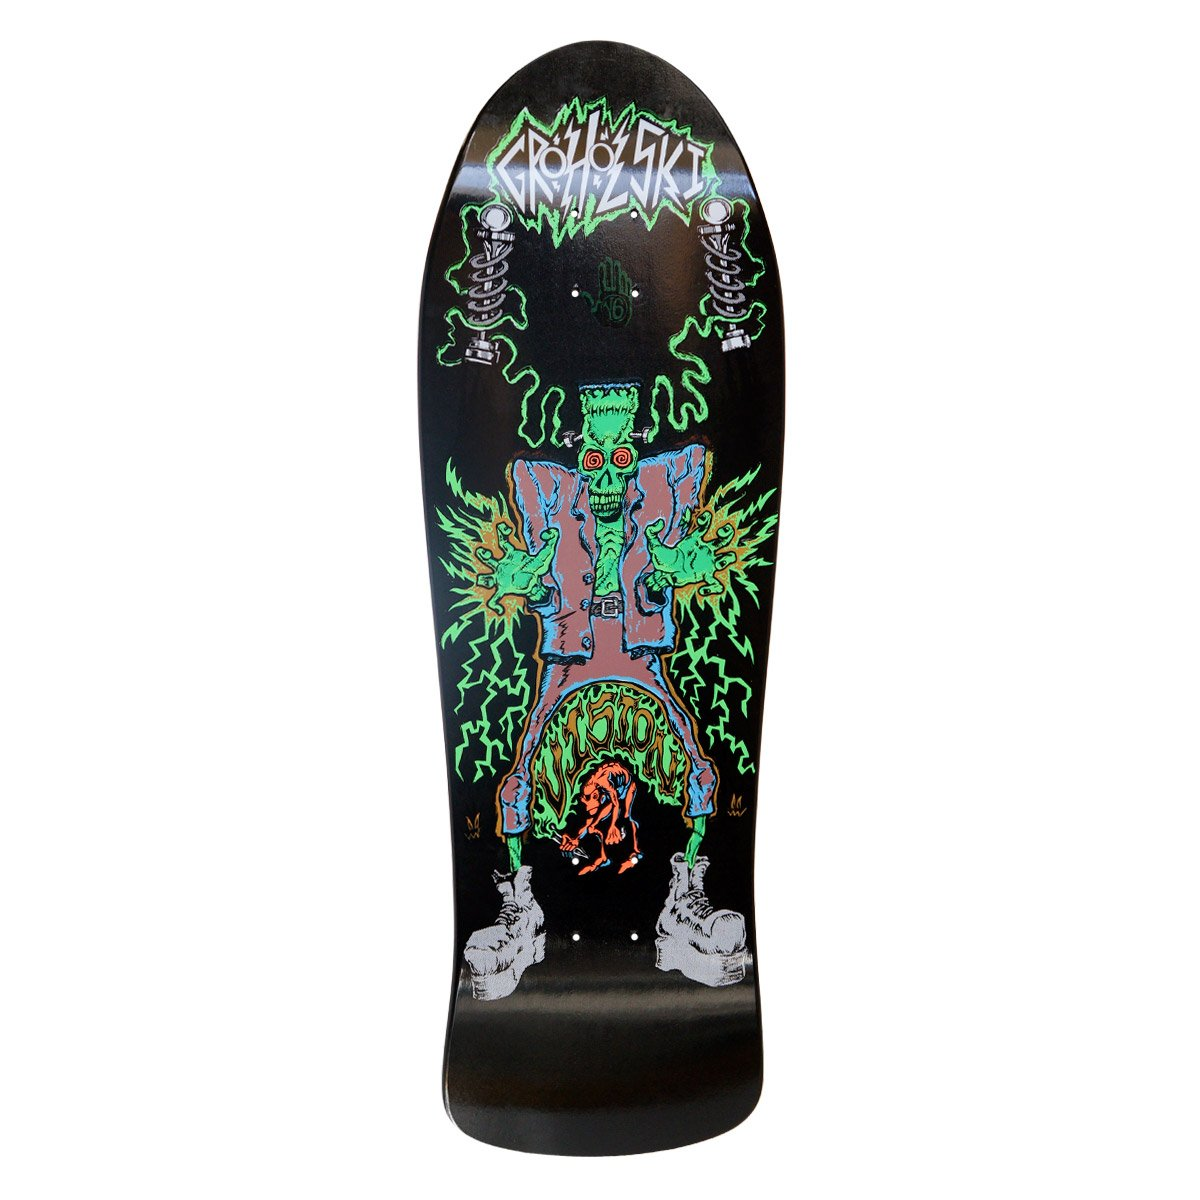 Vision groholski Frankenstein Neuauflage Skateboard Deck 26  x 79, 4  cm Orange BD0V26-orange